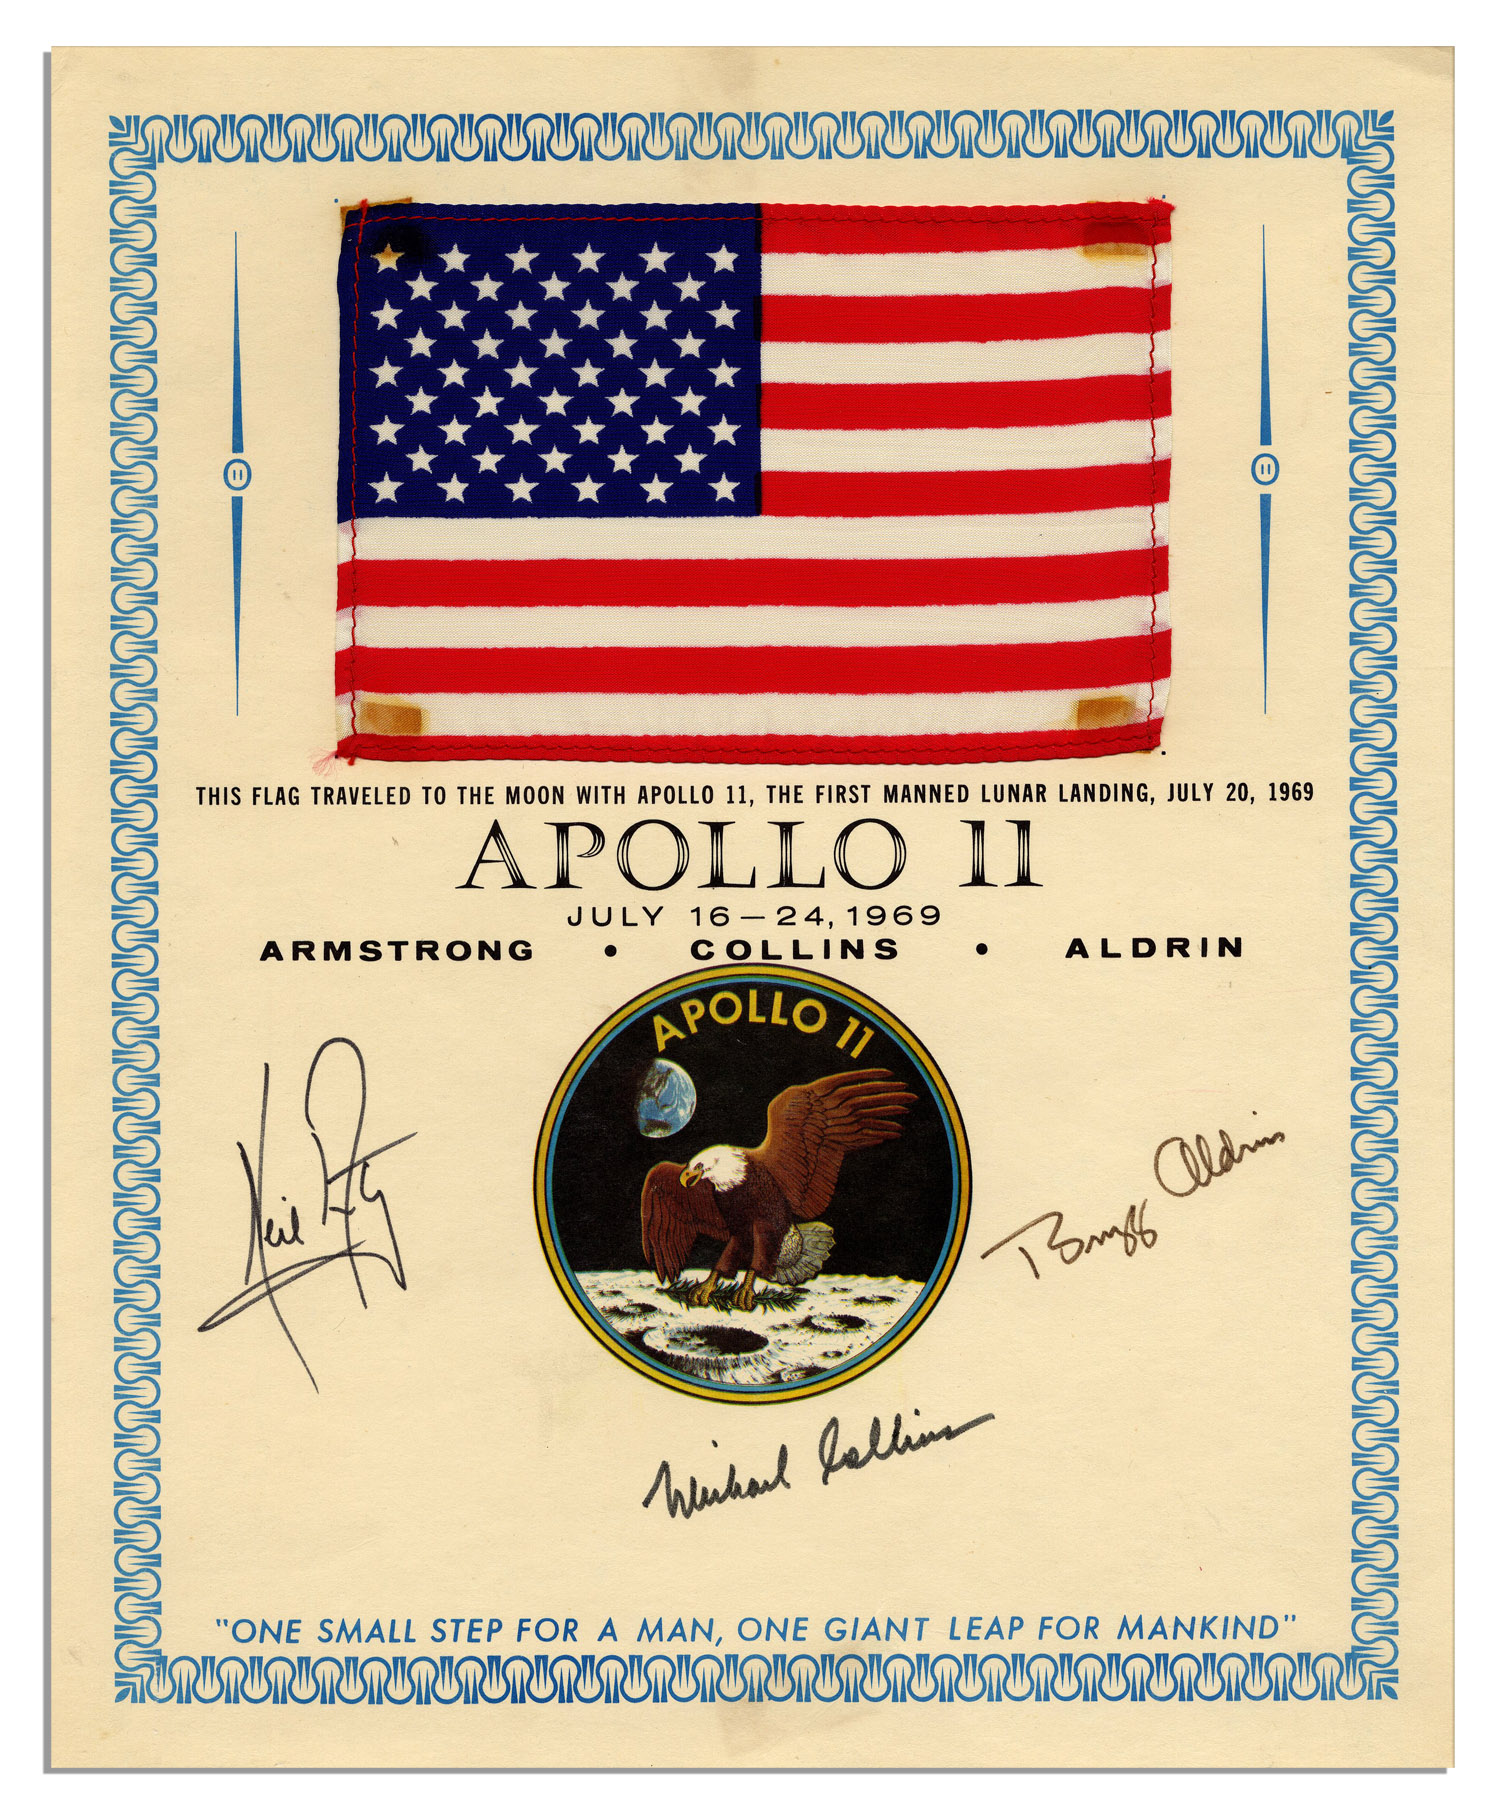 Apollo 11 Flag Flown to the Moon Exceptionally Scarce Apollo 11 Flag Flown to the Moon -- Signed by Armstrong, Aldrin & Collins